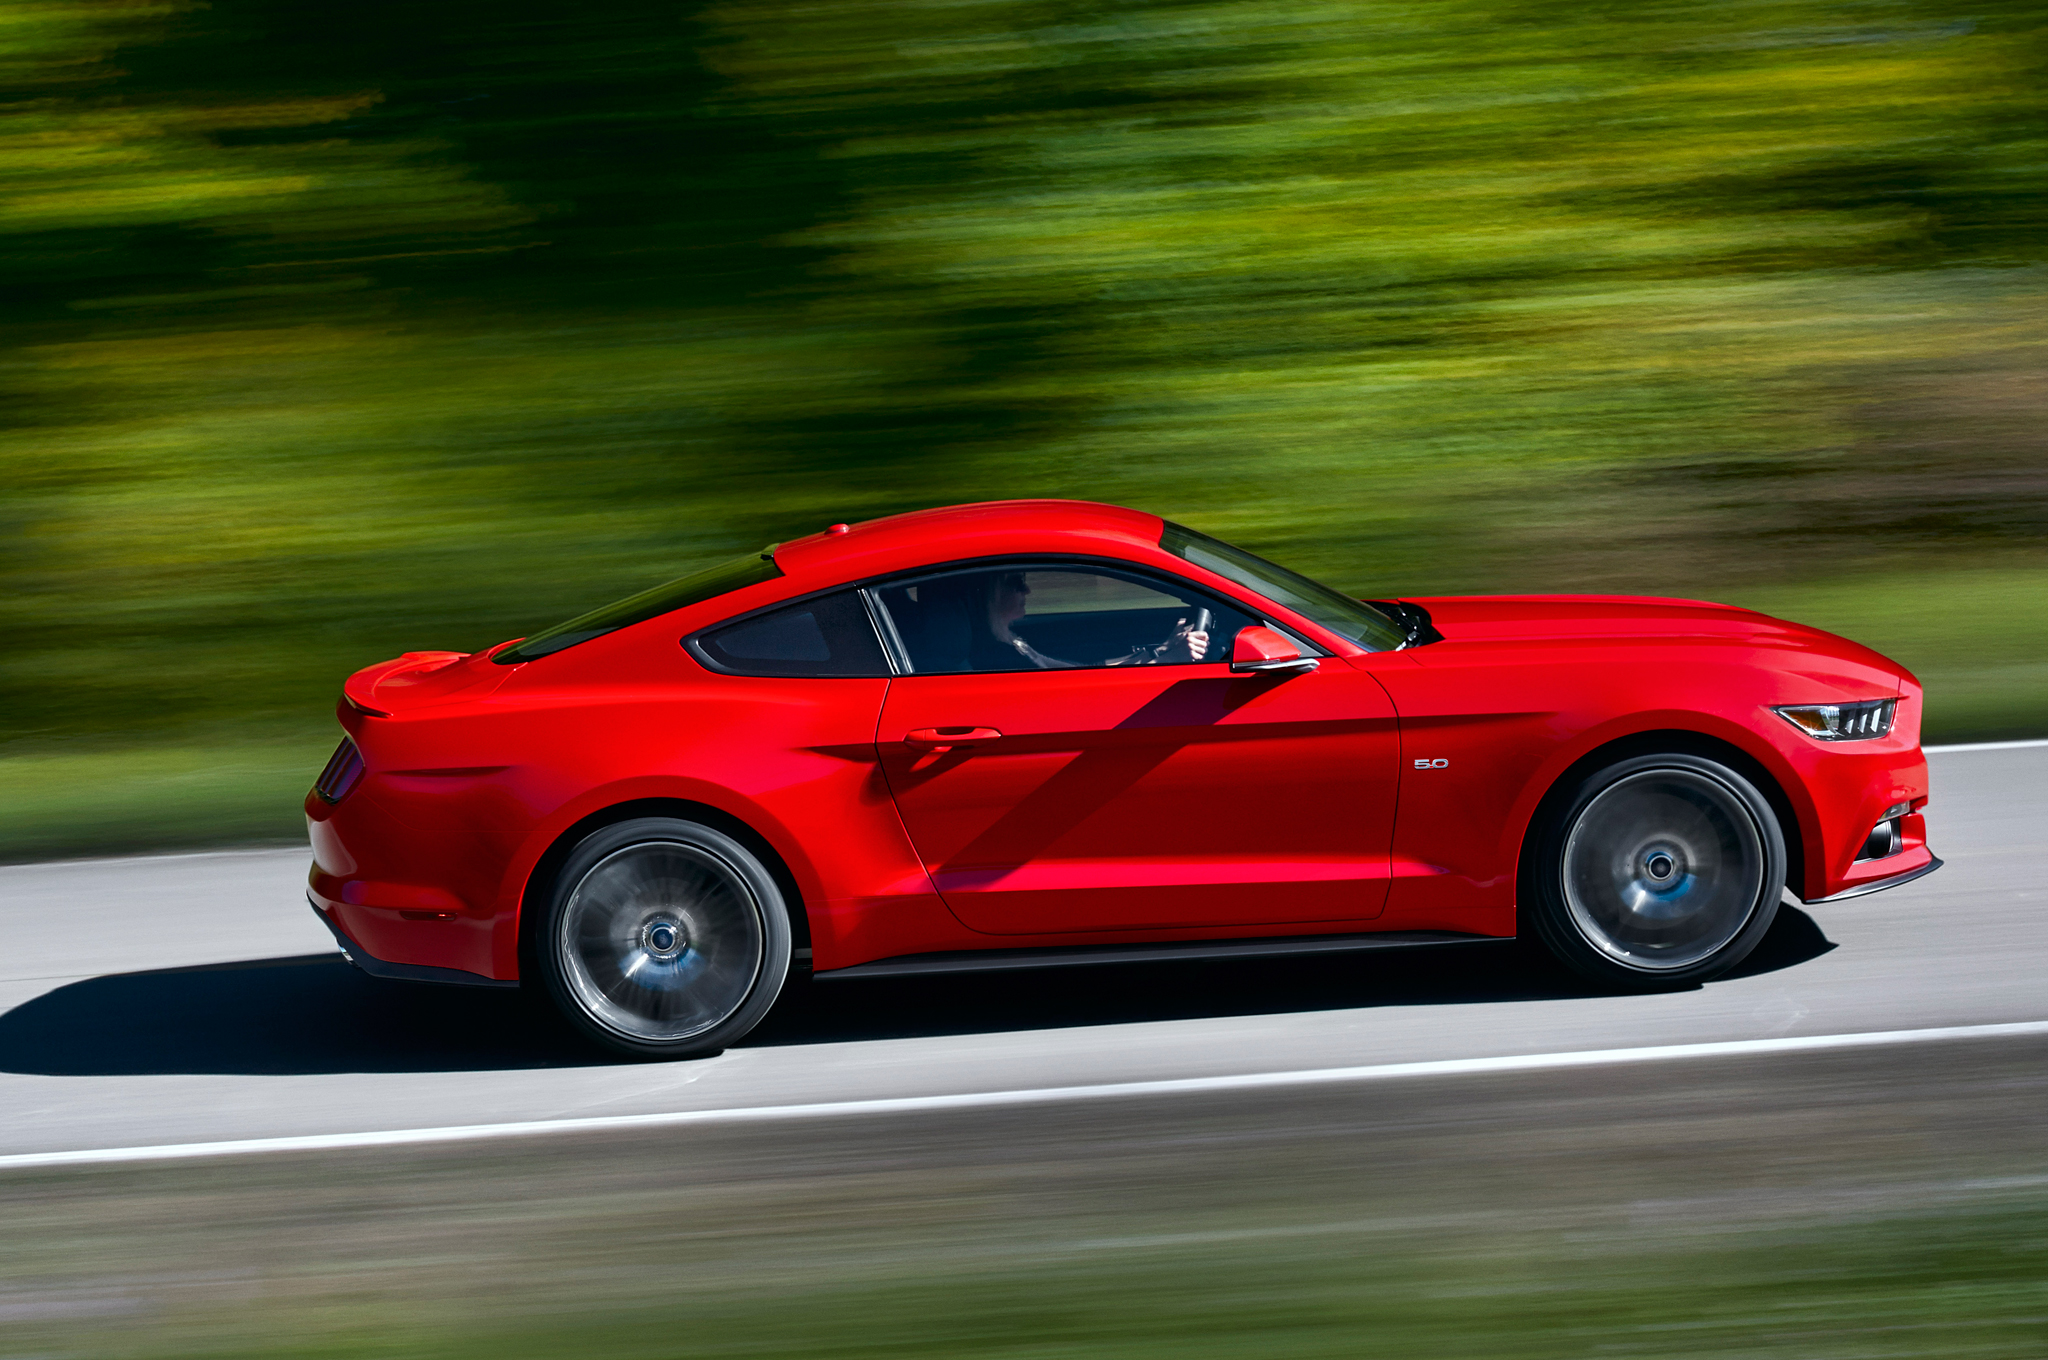 TOTD: 2015 Ford Mustang: 305-HP Turbo I-4 or 300-HP V-6?